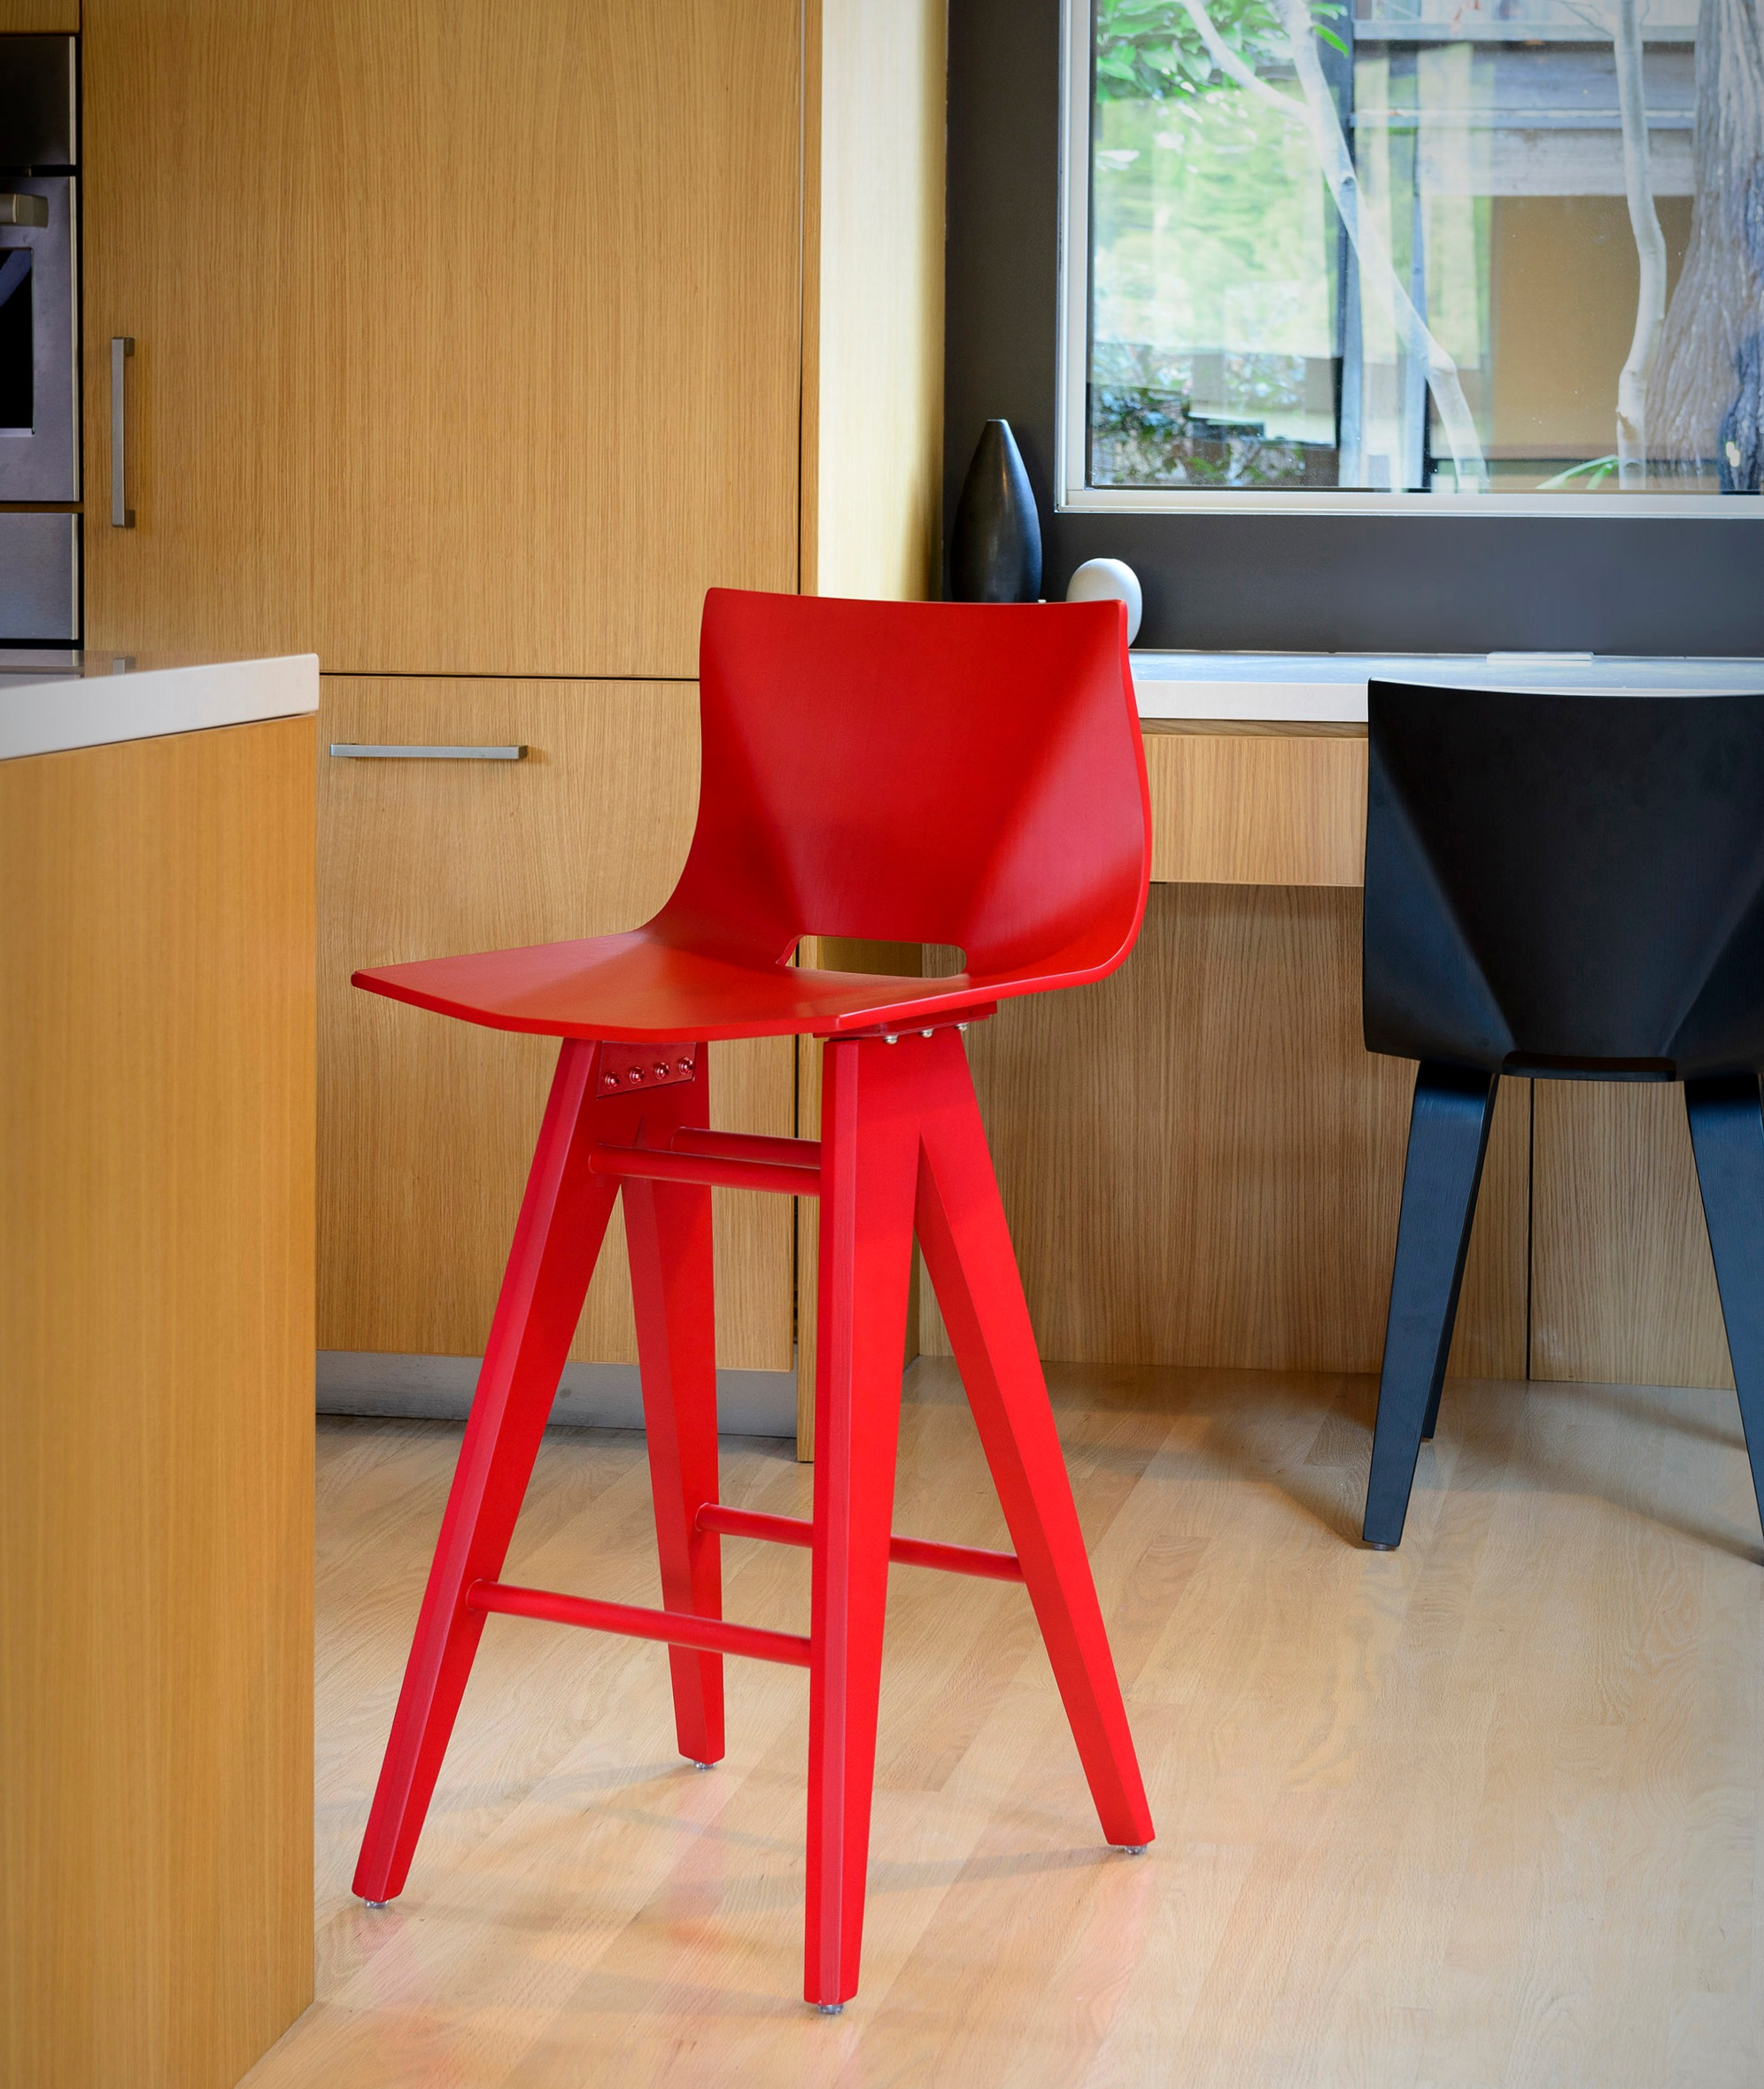 V Counter Stool in red